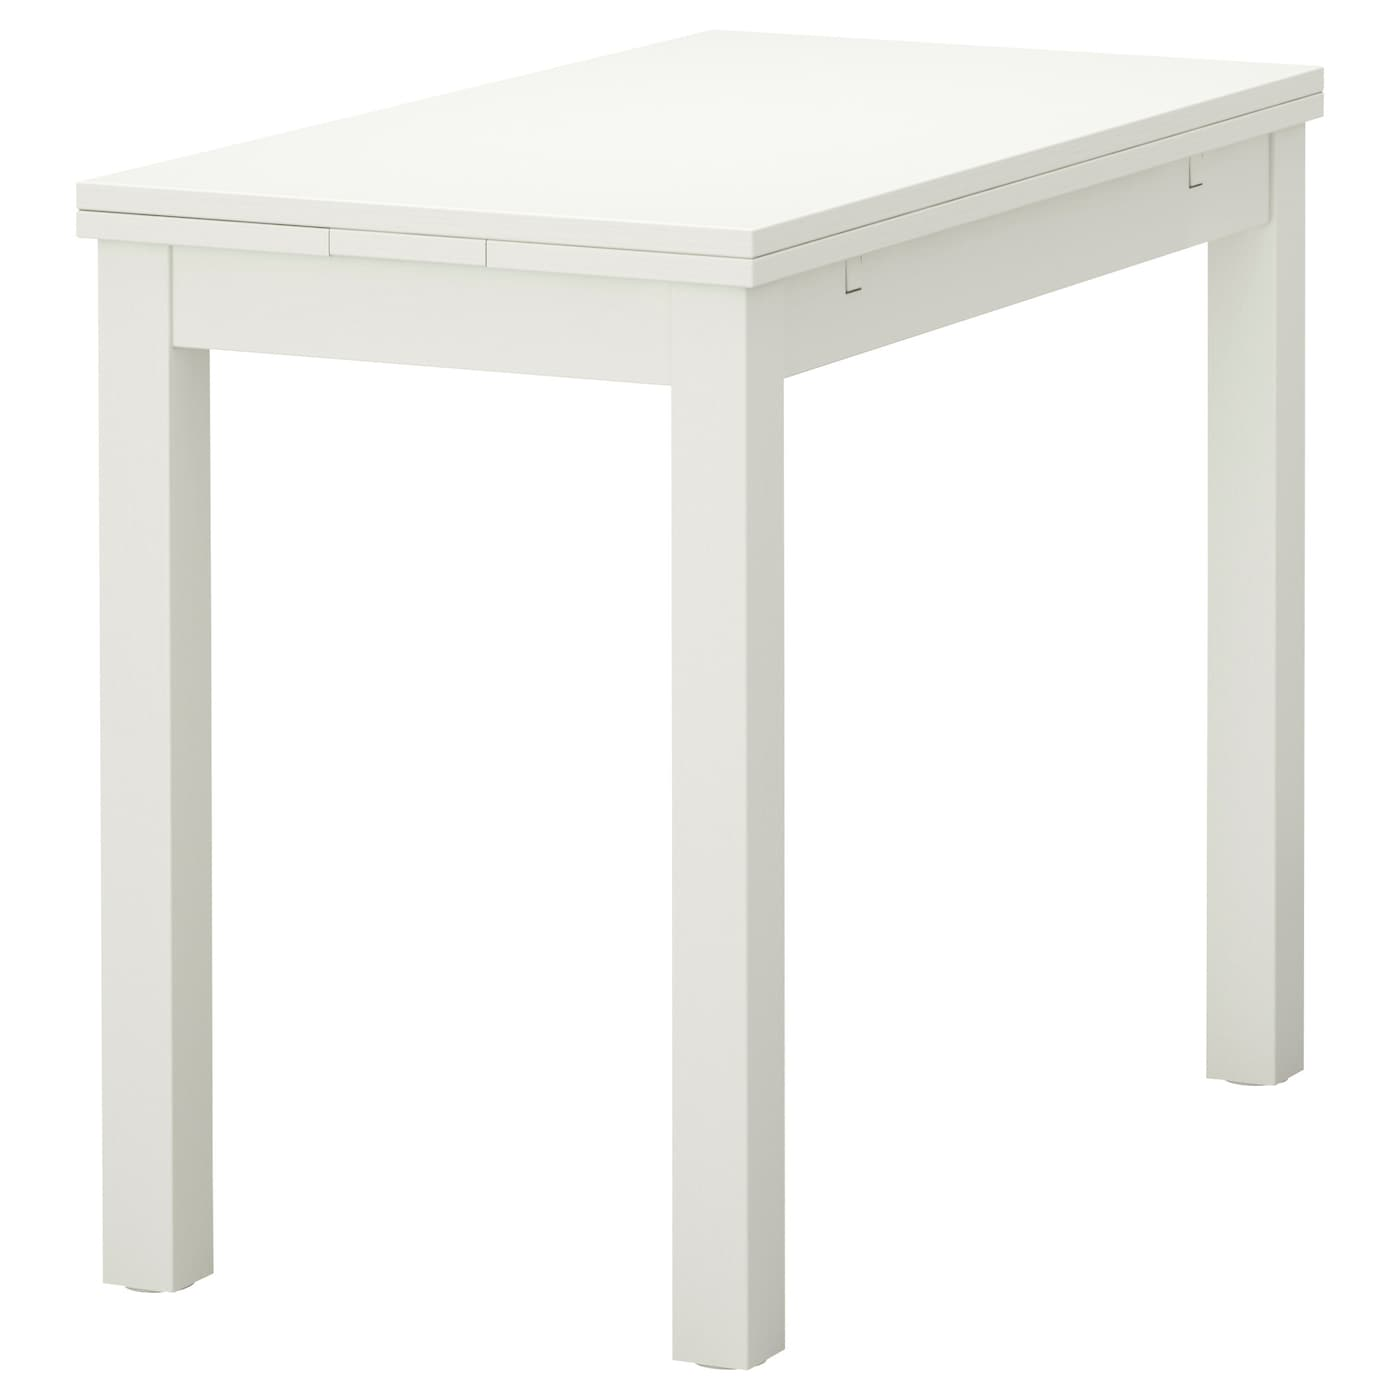 BJURSTA Extendable table White 50/70/90x90 cm - IKEA